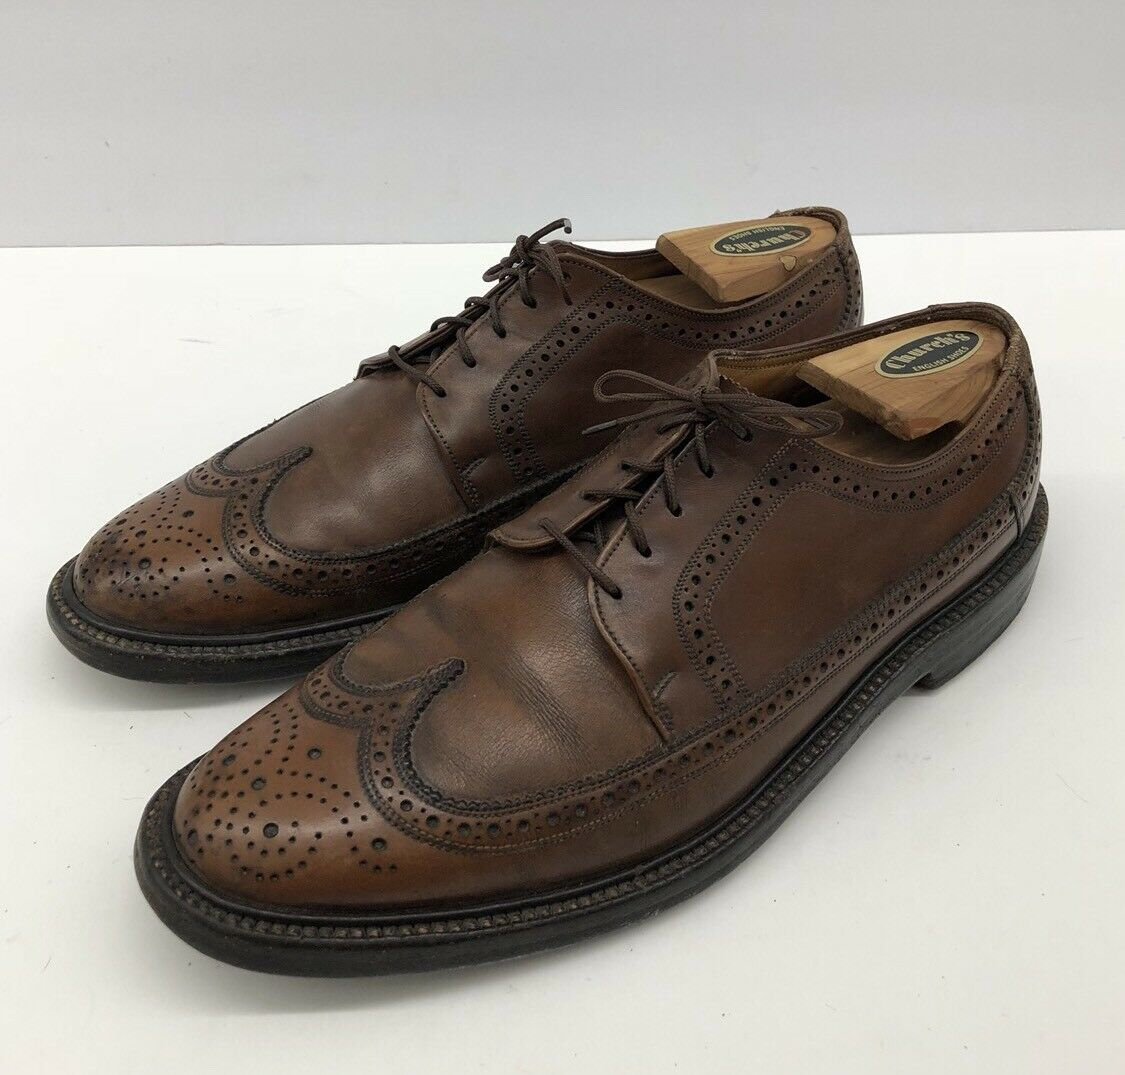 FLORSHEIM VARSITY 30679 WINGTIP LEATHER DRESS SHOES MENS SZ 8 D